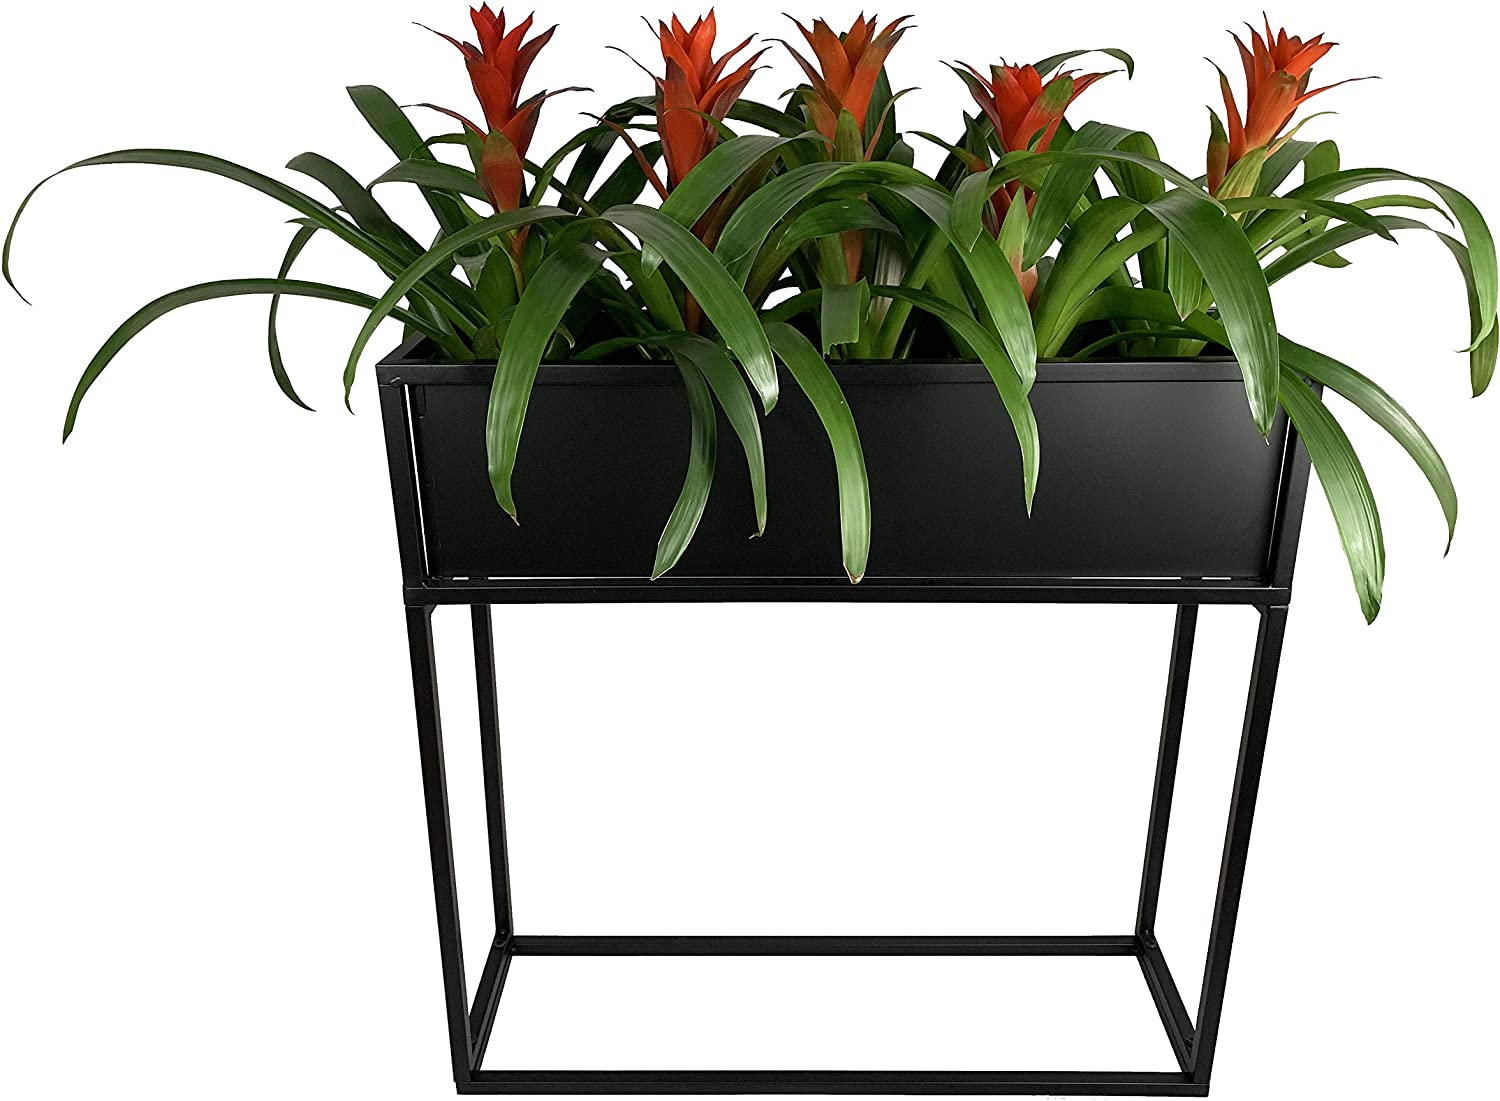 "Cocoyard Industrial Style Elevated Metal Planter Box. Modern Flower Box Succulent Planter Raised Planter Box, Great Gift for Plant Lover, Birthday, and Holidays (Tall, 28"")"